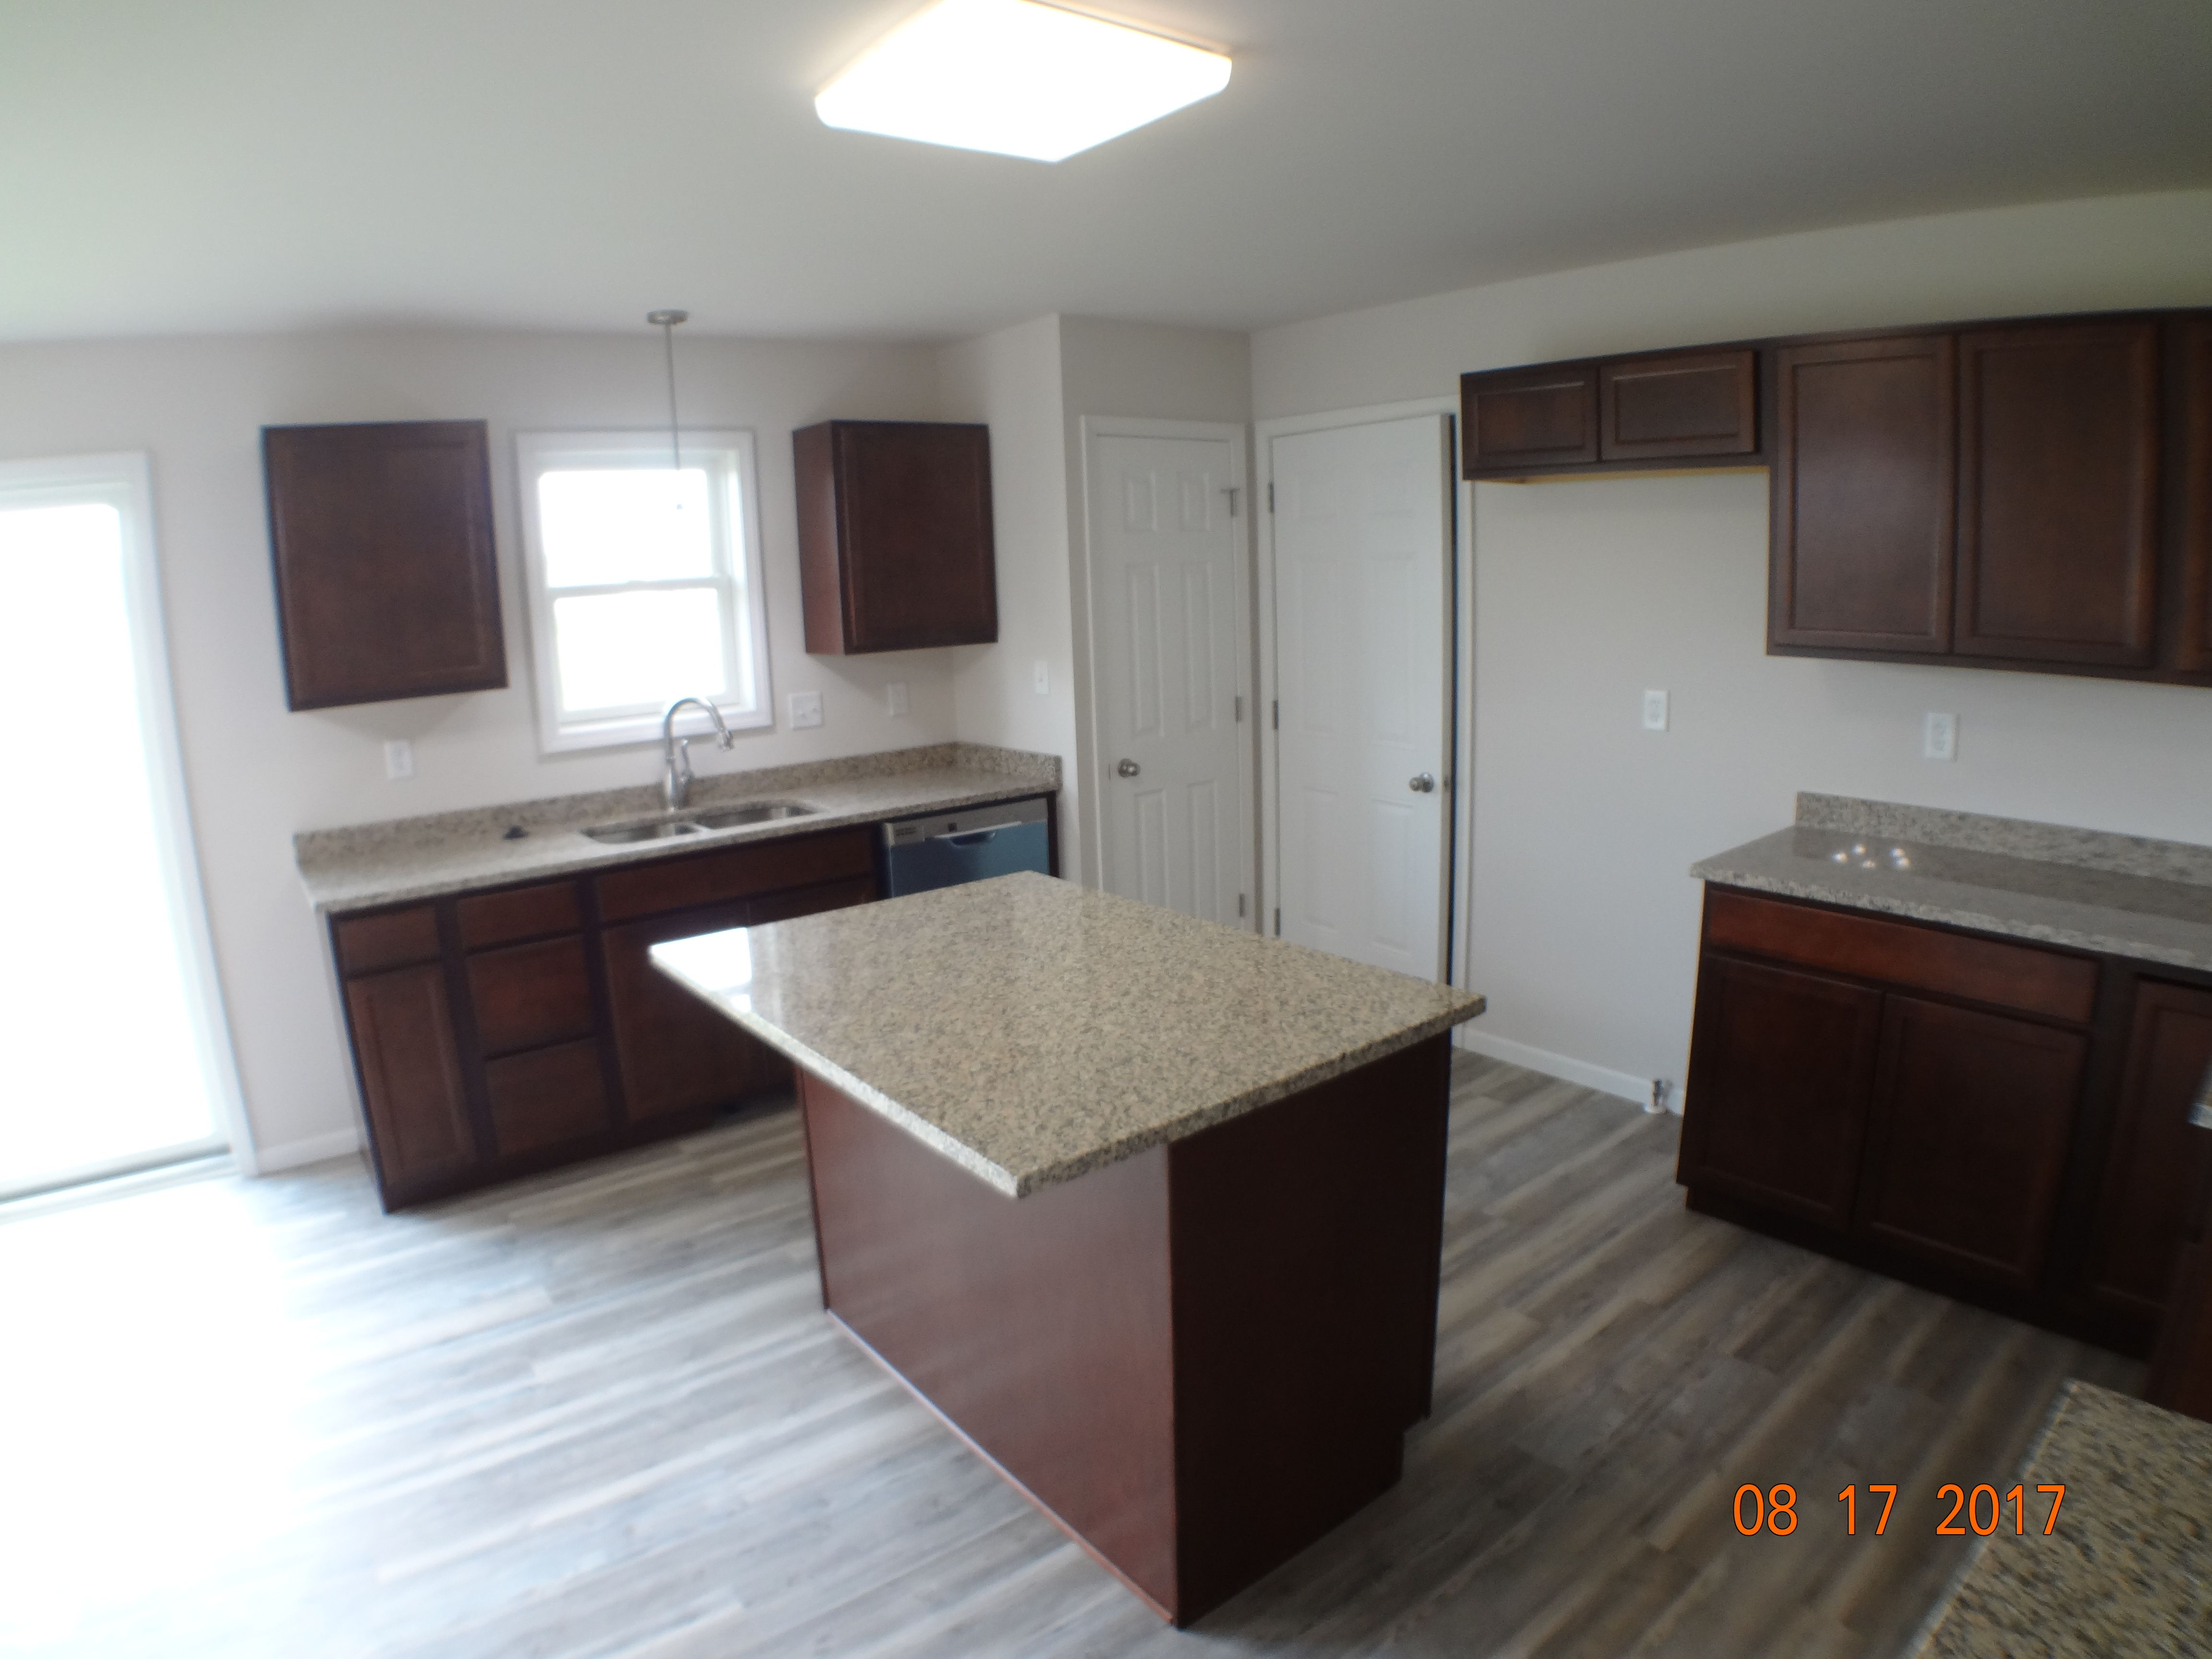 Kitchen featured in the Amhurst III By Accent Homes Inc. in Gary, IN